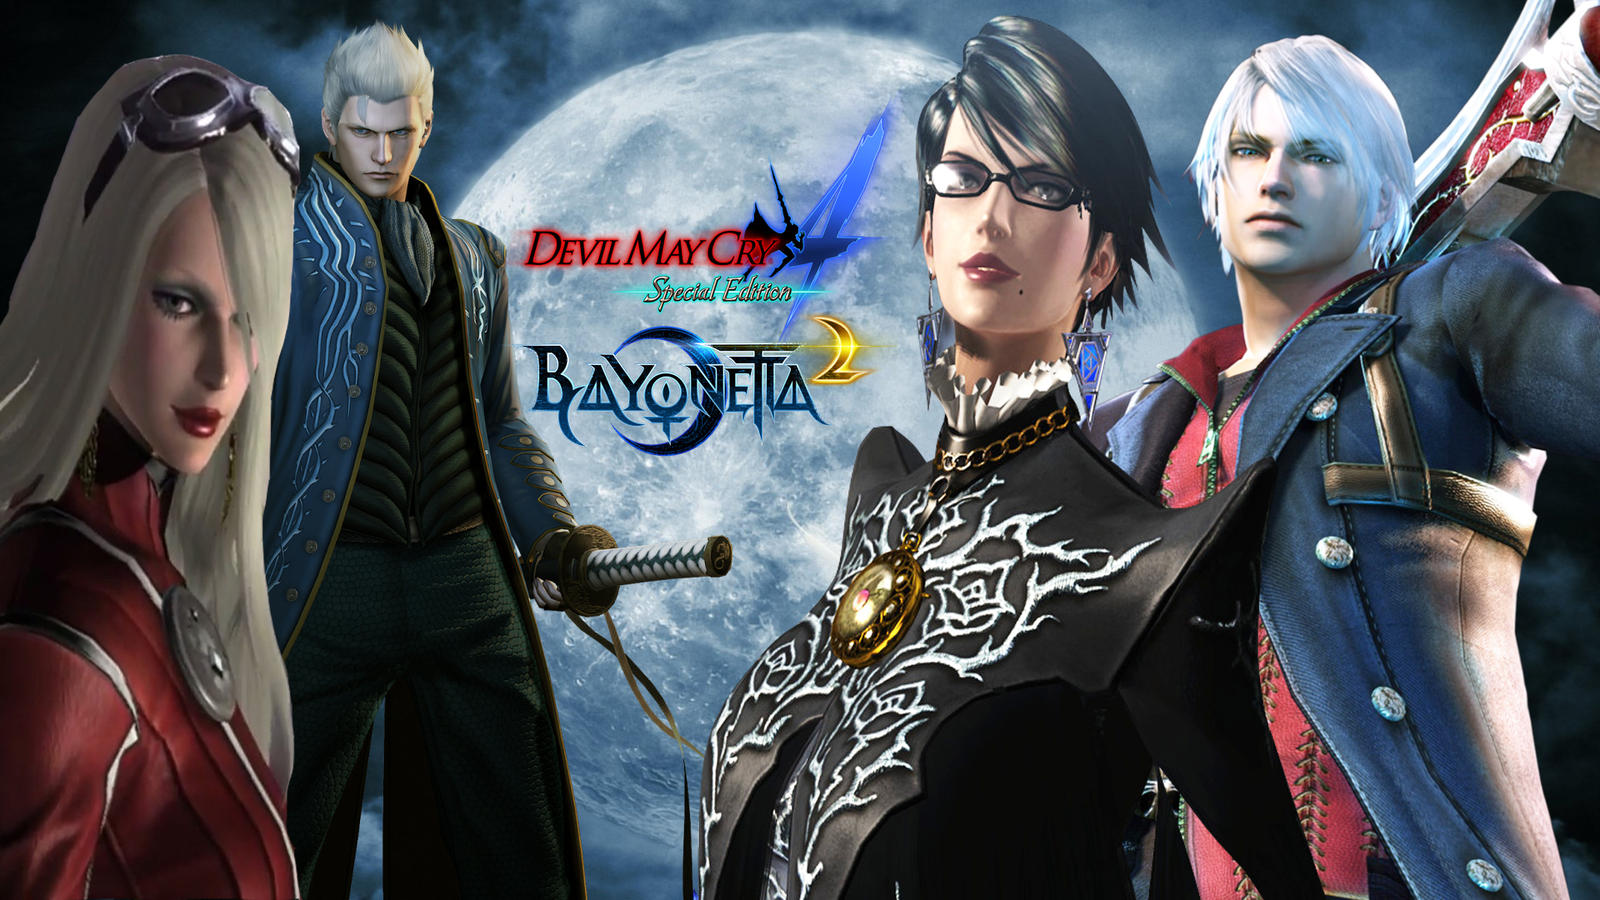 Devil May Cry 4 Se And Bayonetta 2 Wallpaper By Hatredboy On